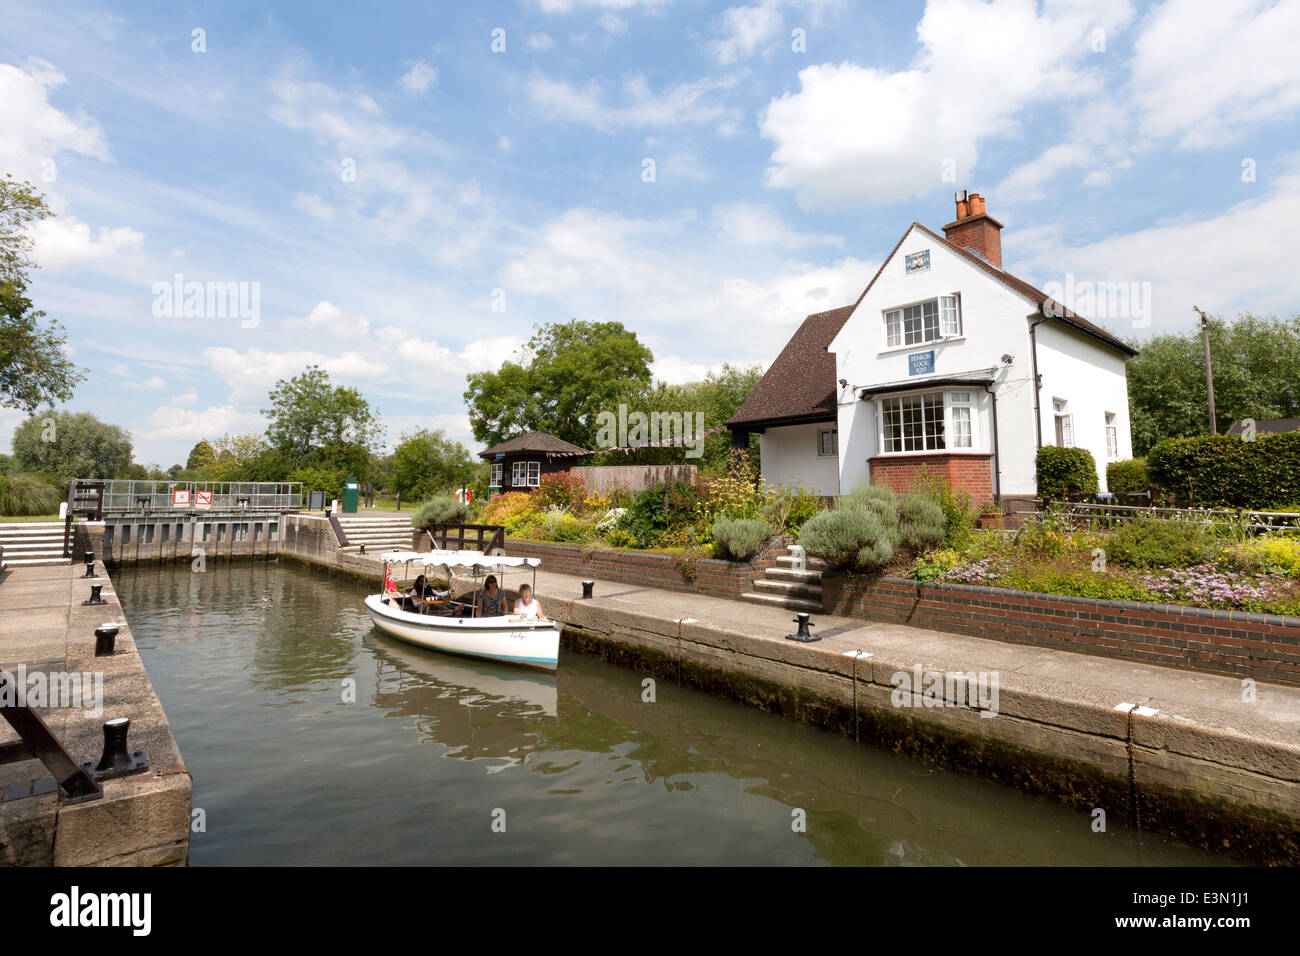 A boat in Benson Lock, with the lock house, River Thames, Oxfordshire, England UK Stock Photo